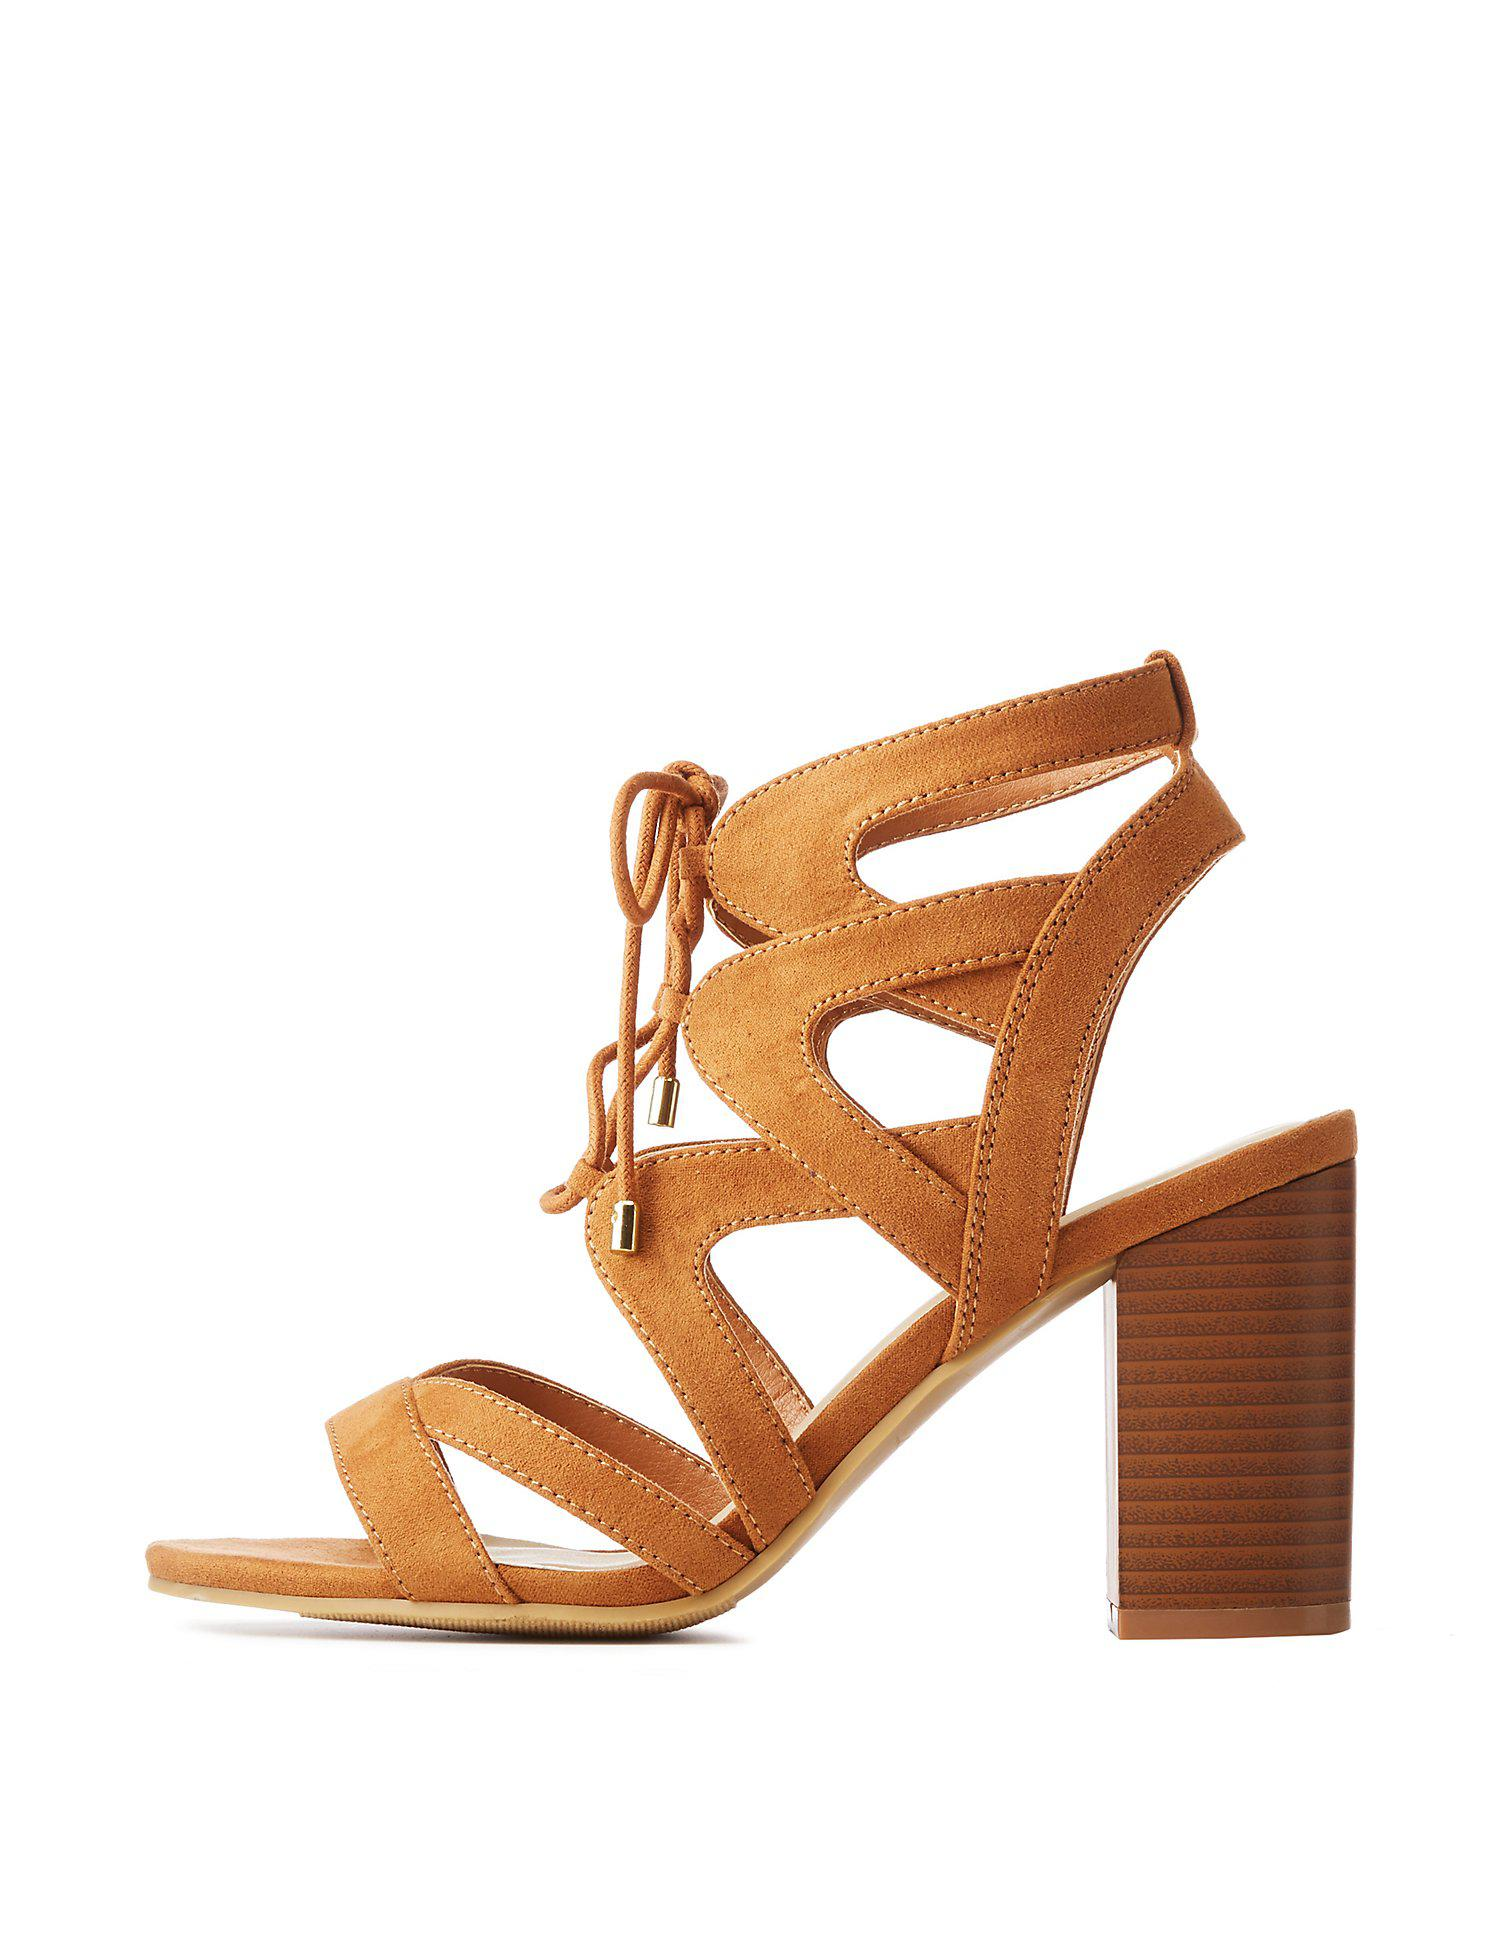 0bee37d6b4b Lyst - Charlotte Russe Caged Lace-up Sandals in Brown - Save 62%